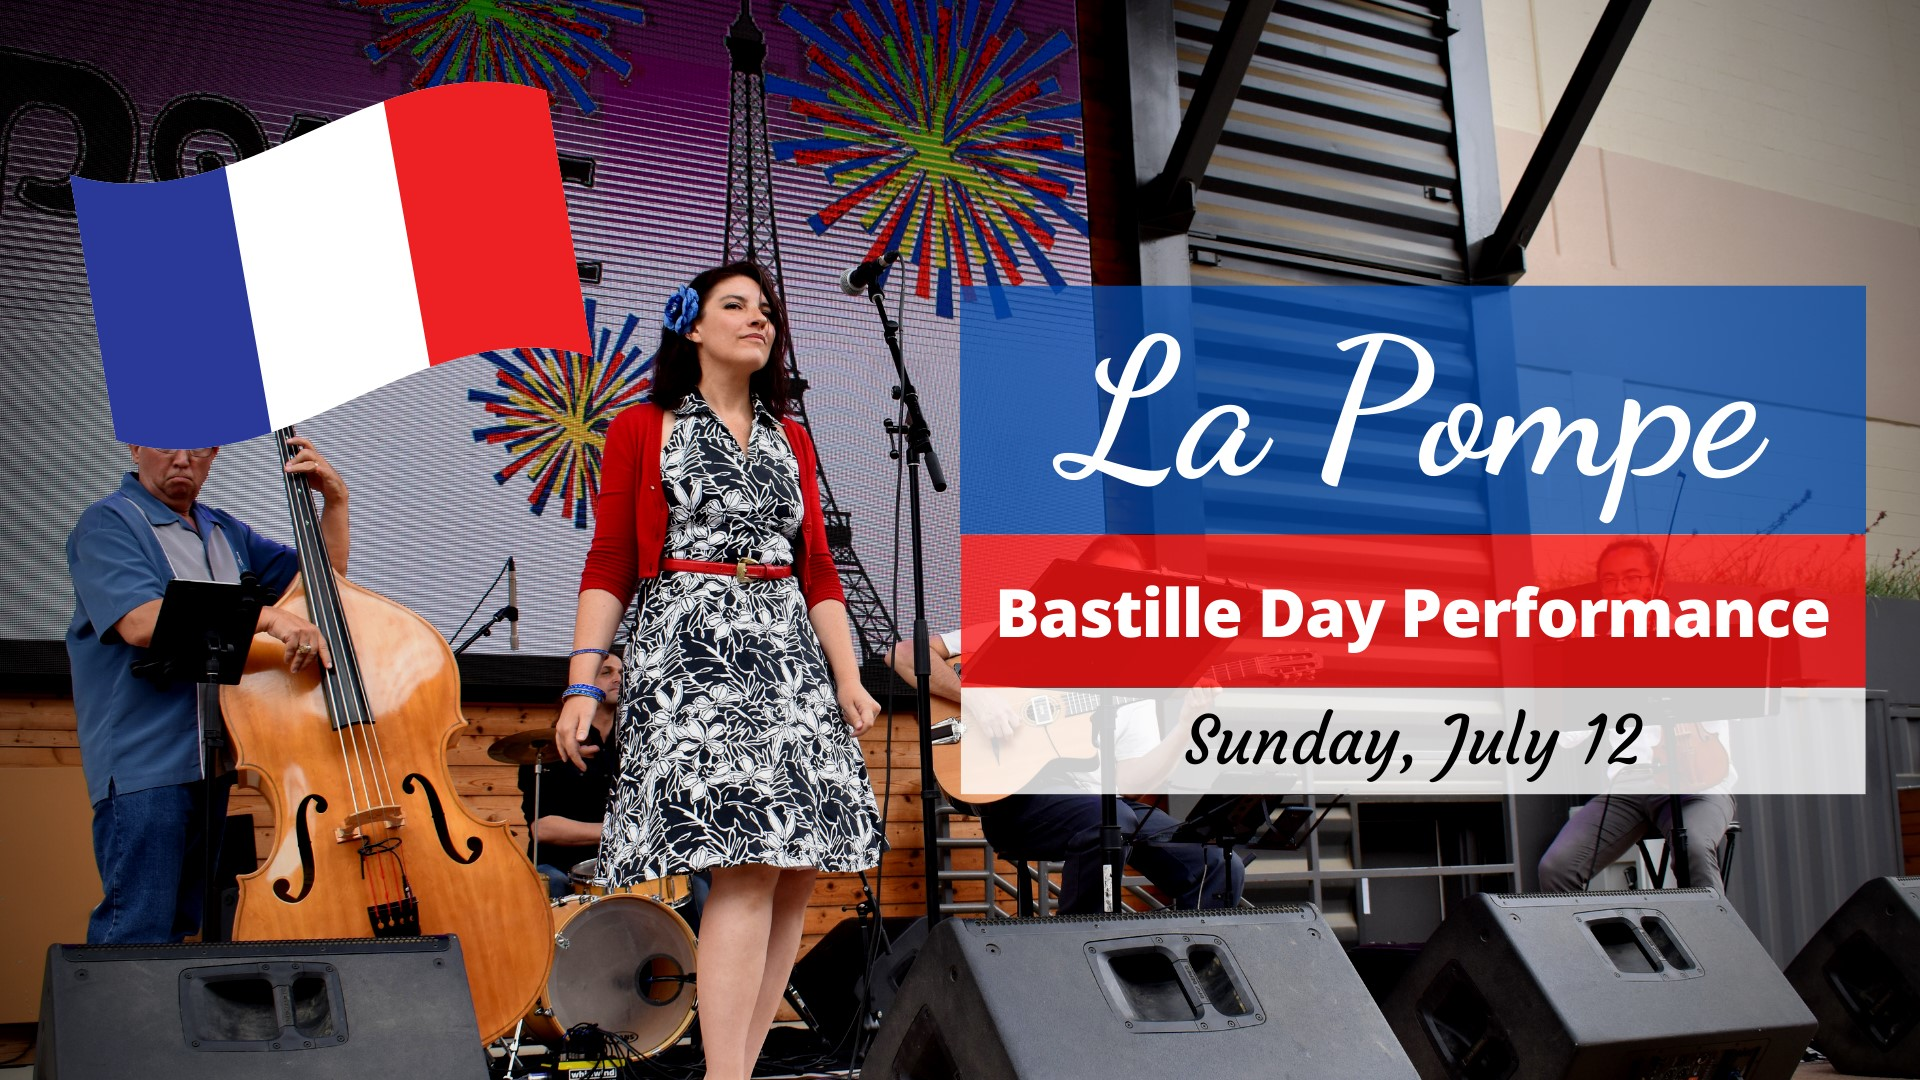 Promo image of La Pompe Bastille Day Performance